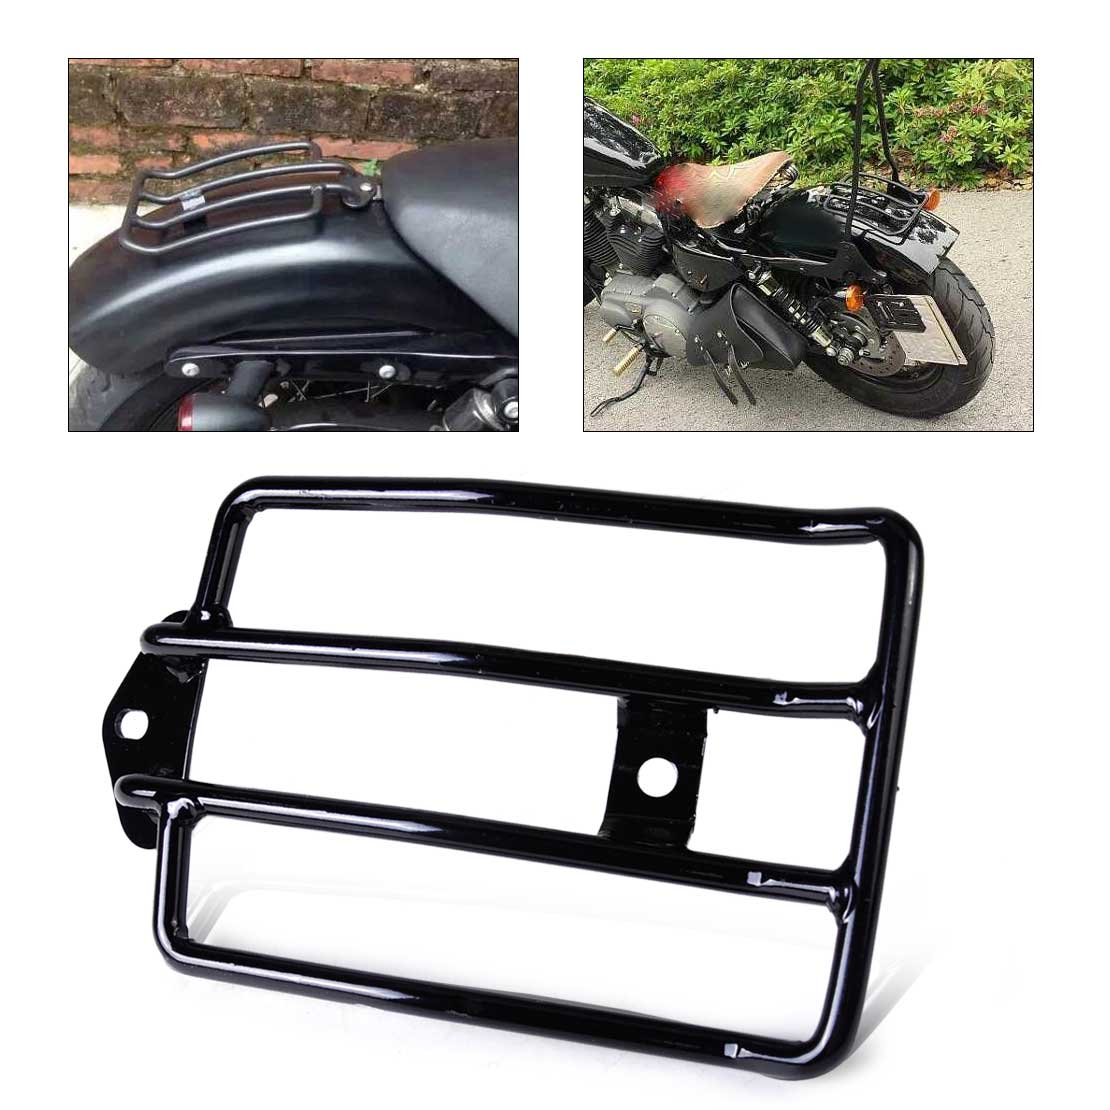 beler New 1Pc Motorcycle Black Seat Luggage Shelf Carrier Support Rack Fit for Harley Davidson Sportster 1200 Sportster 883 motorcycle solo seat luggage rack suitable for harley davidson sportster xl883 1200 48